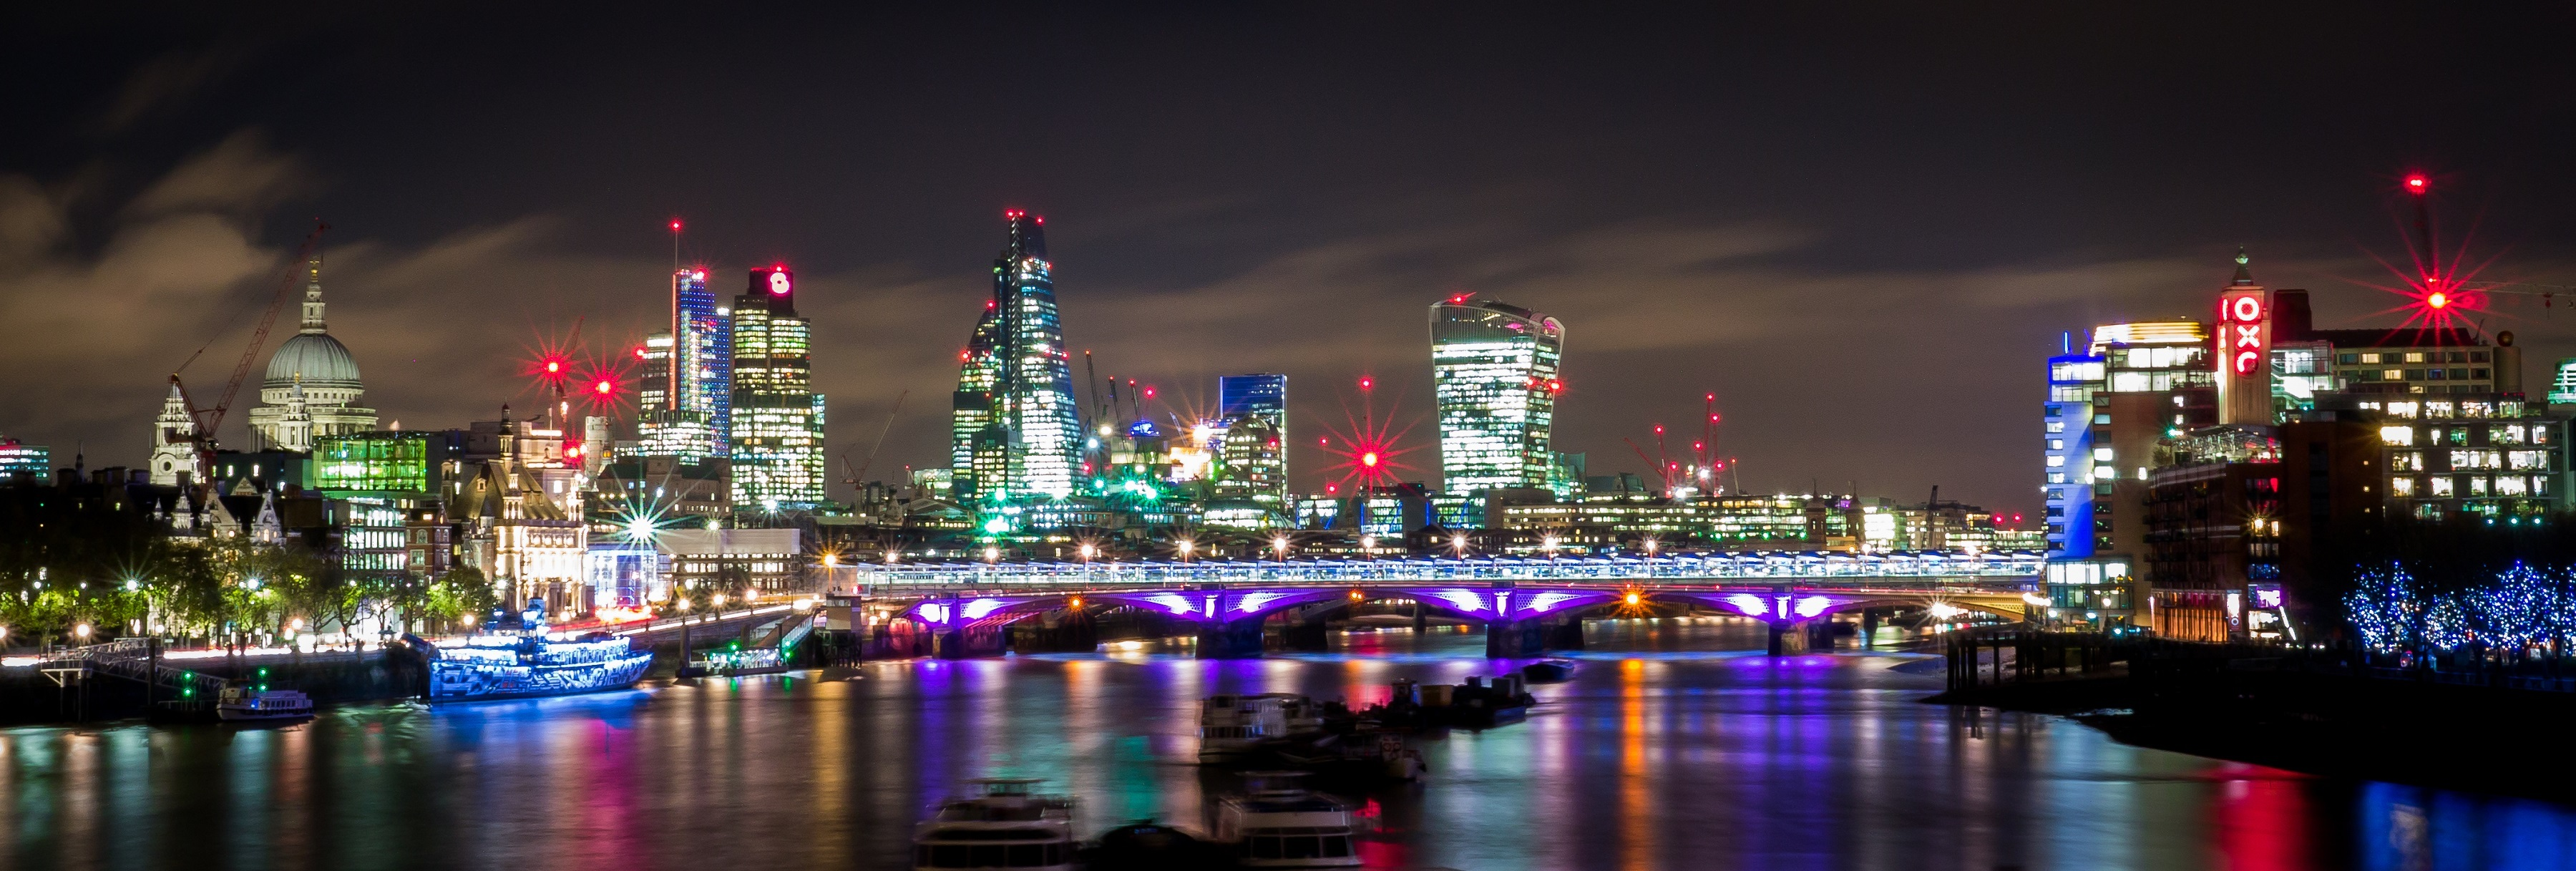 London nightscene